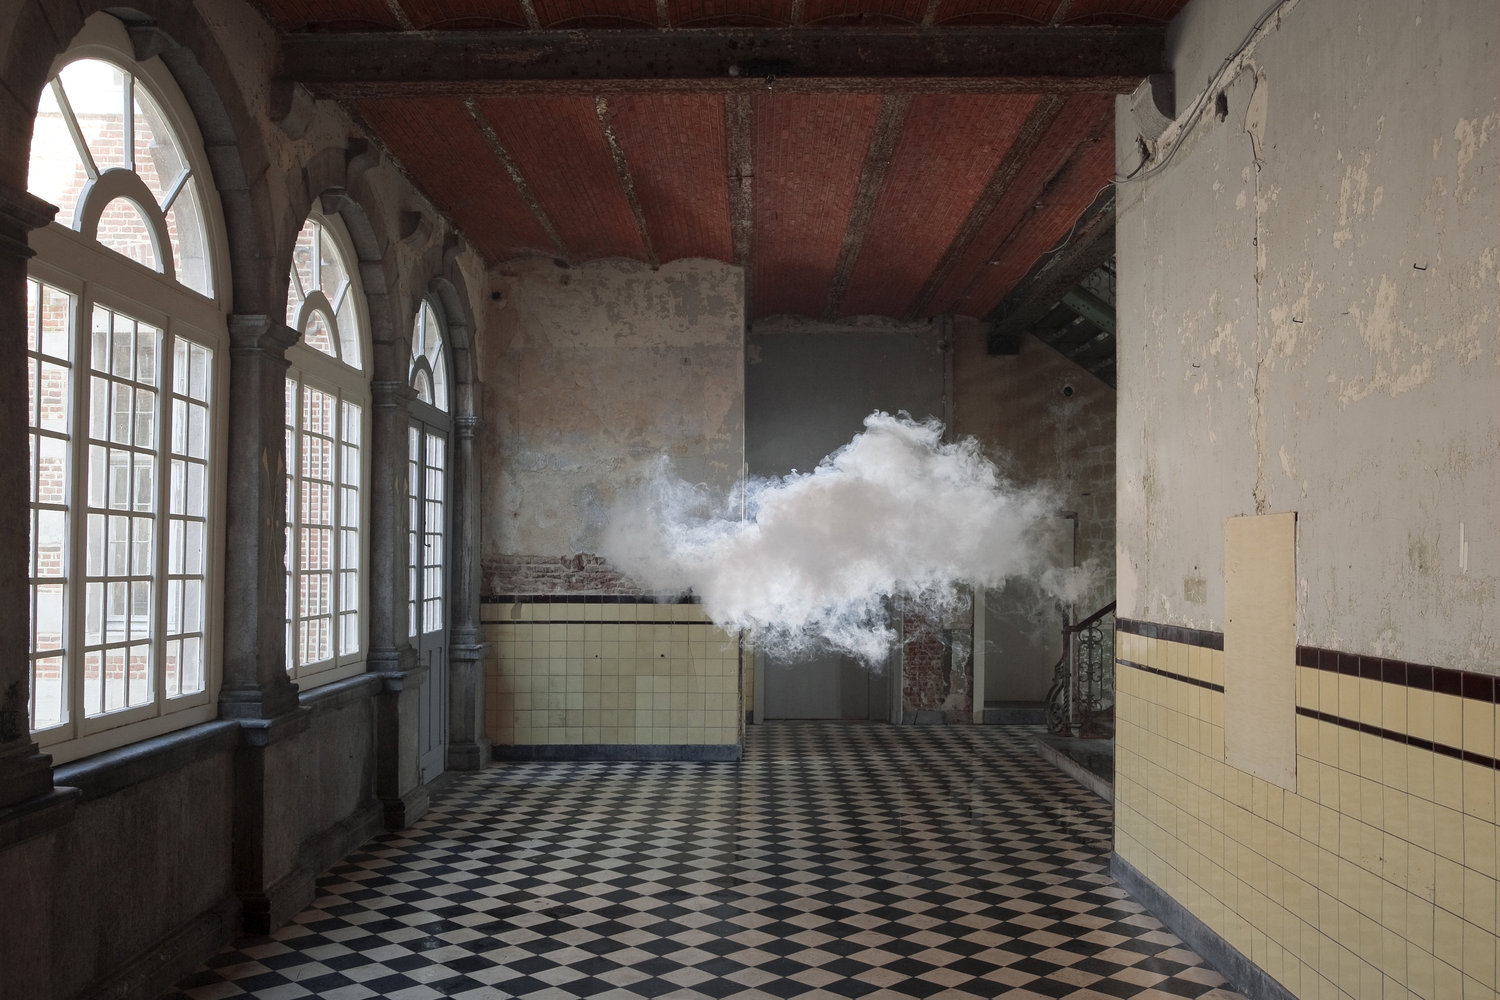 Berndnaut Smilde, _Nimbus D'Aspremont_, 2012, photo by Cassander Eeftinck Schattenkerk